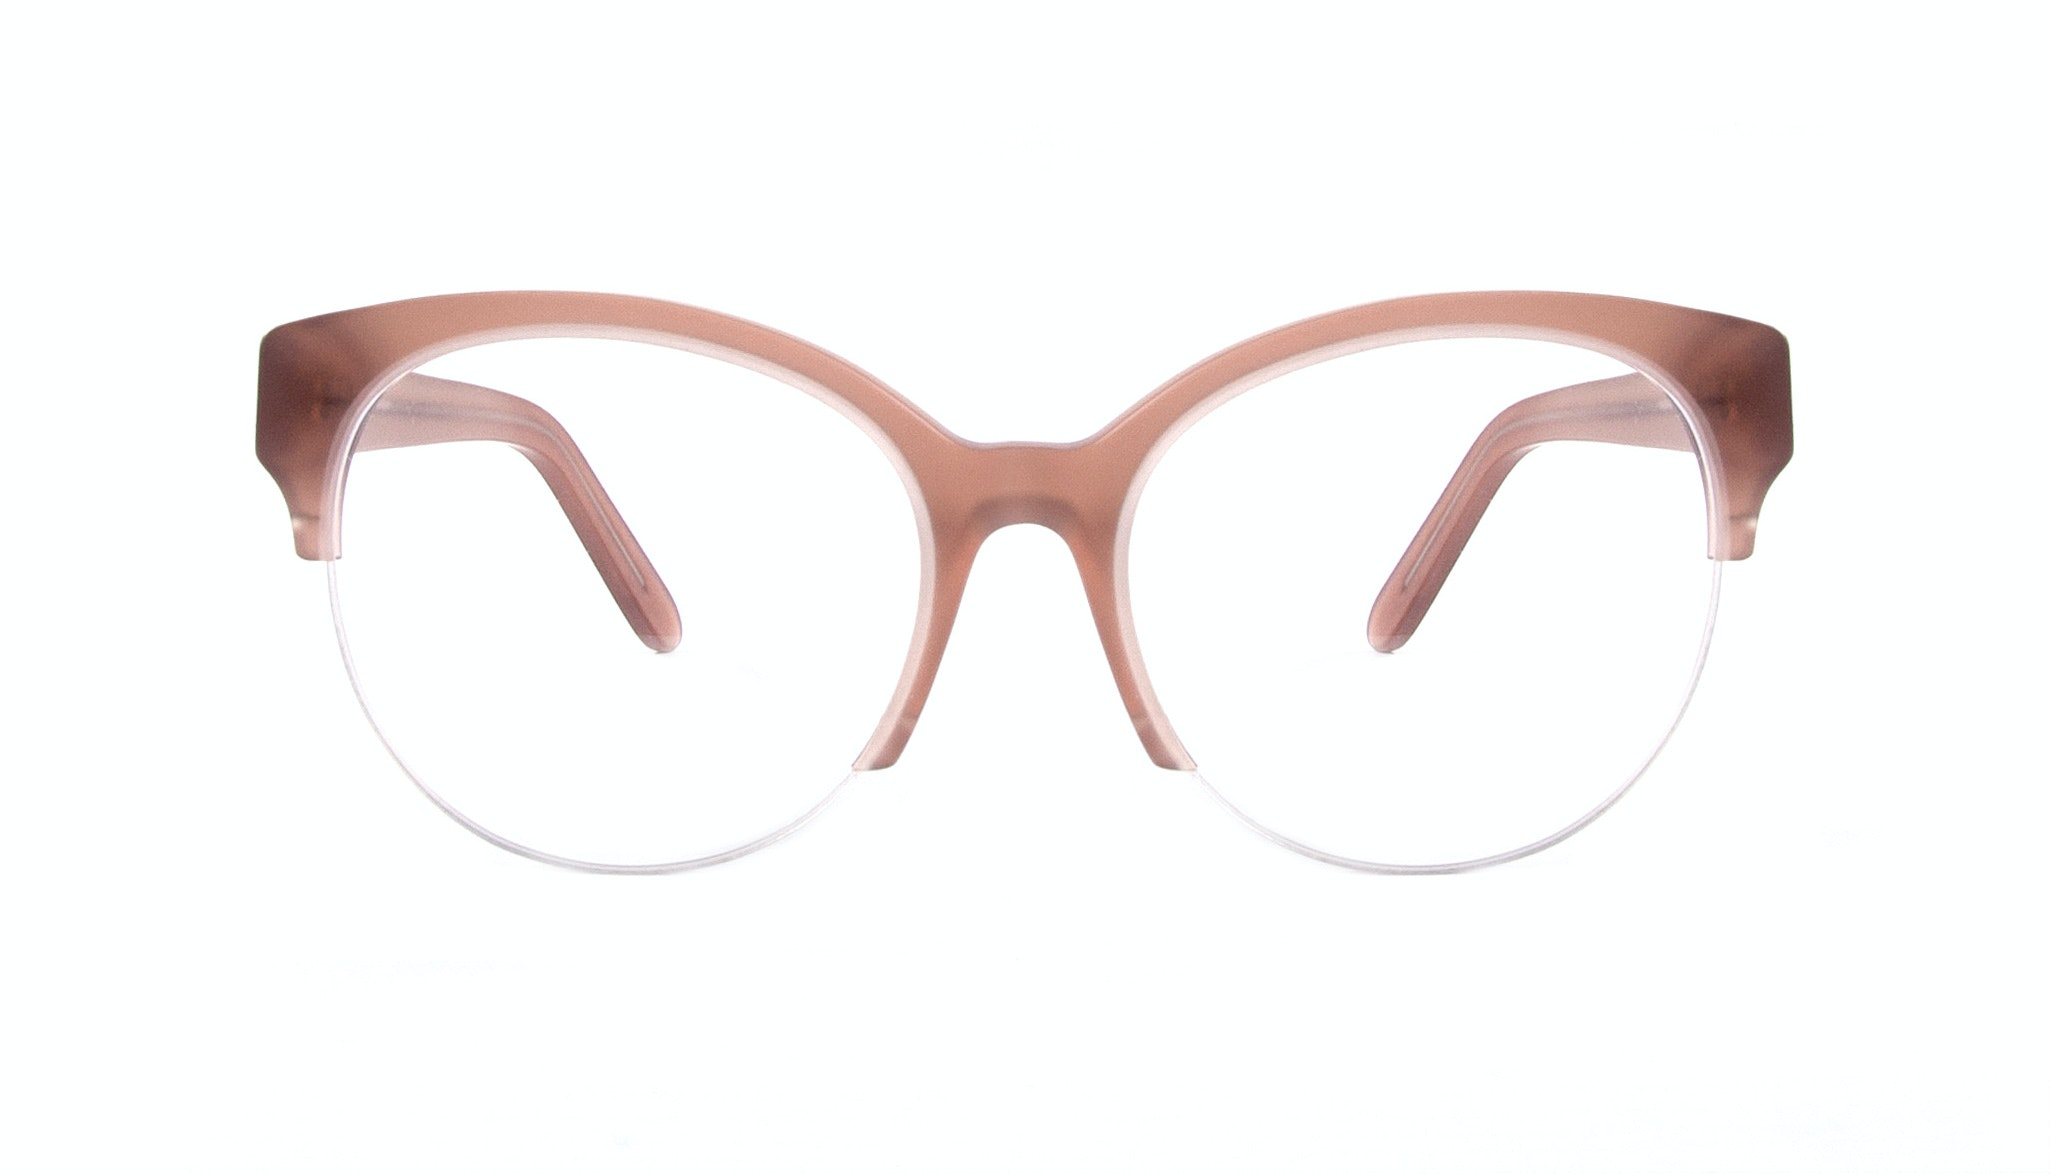 Affordable Fashion Glasses Cat Eye Round Semi-Rimless Eyeglasses Women Eclipse Light Old Rose